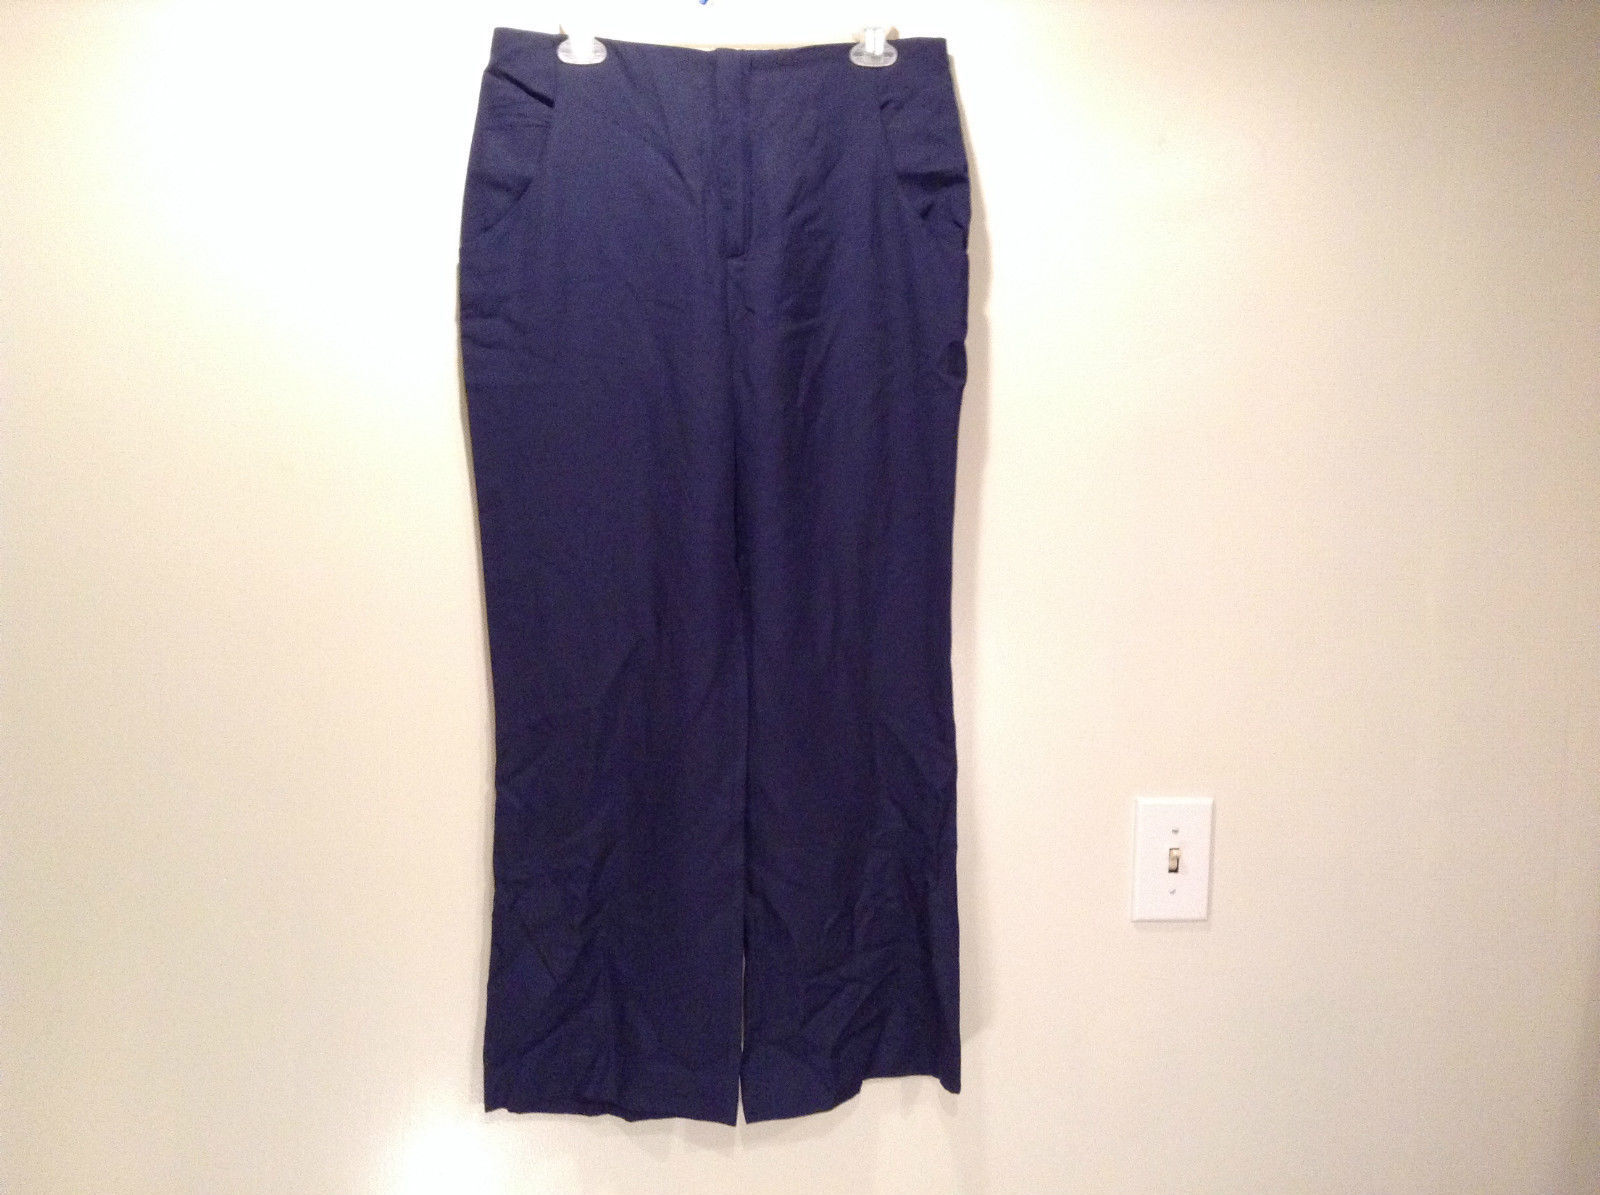 ZARA Woman Size Large Dark Blue Casual Pants Made in Spain Front Back Pockets